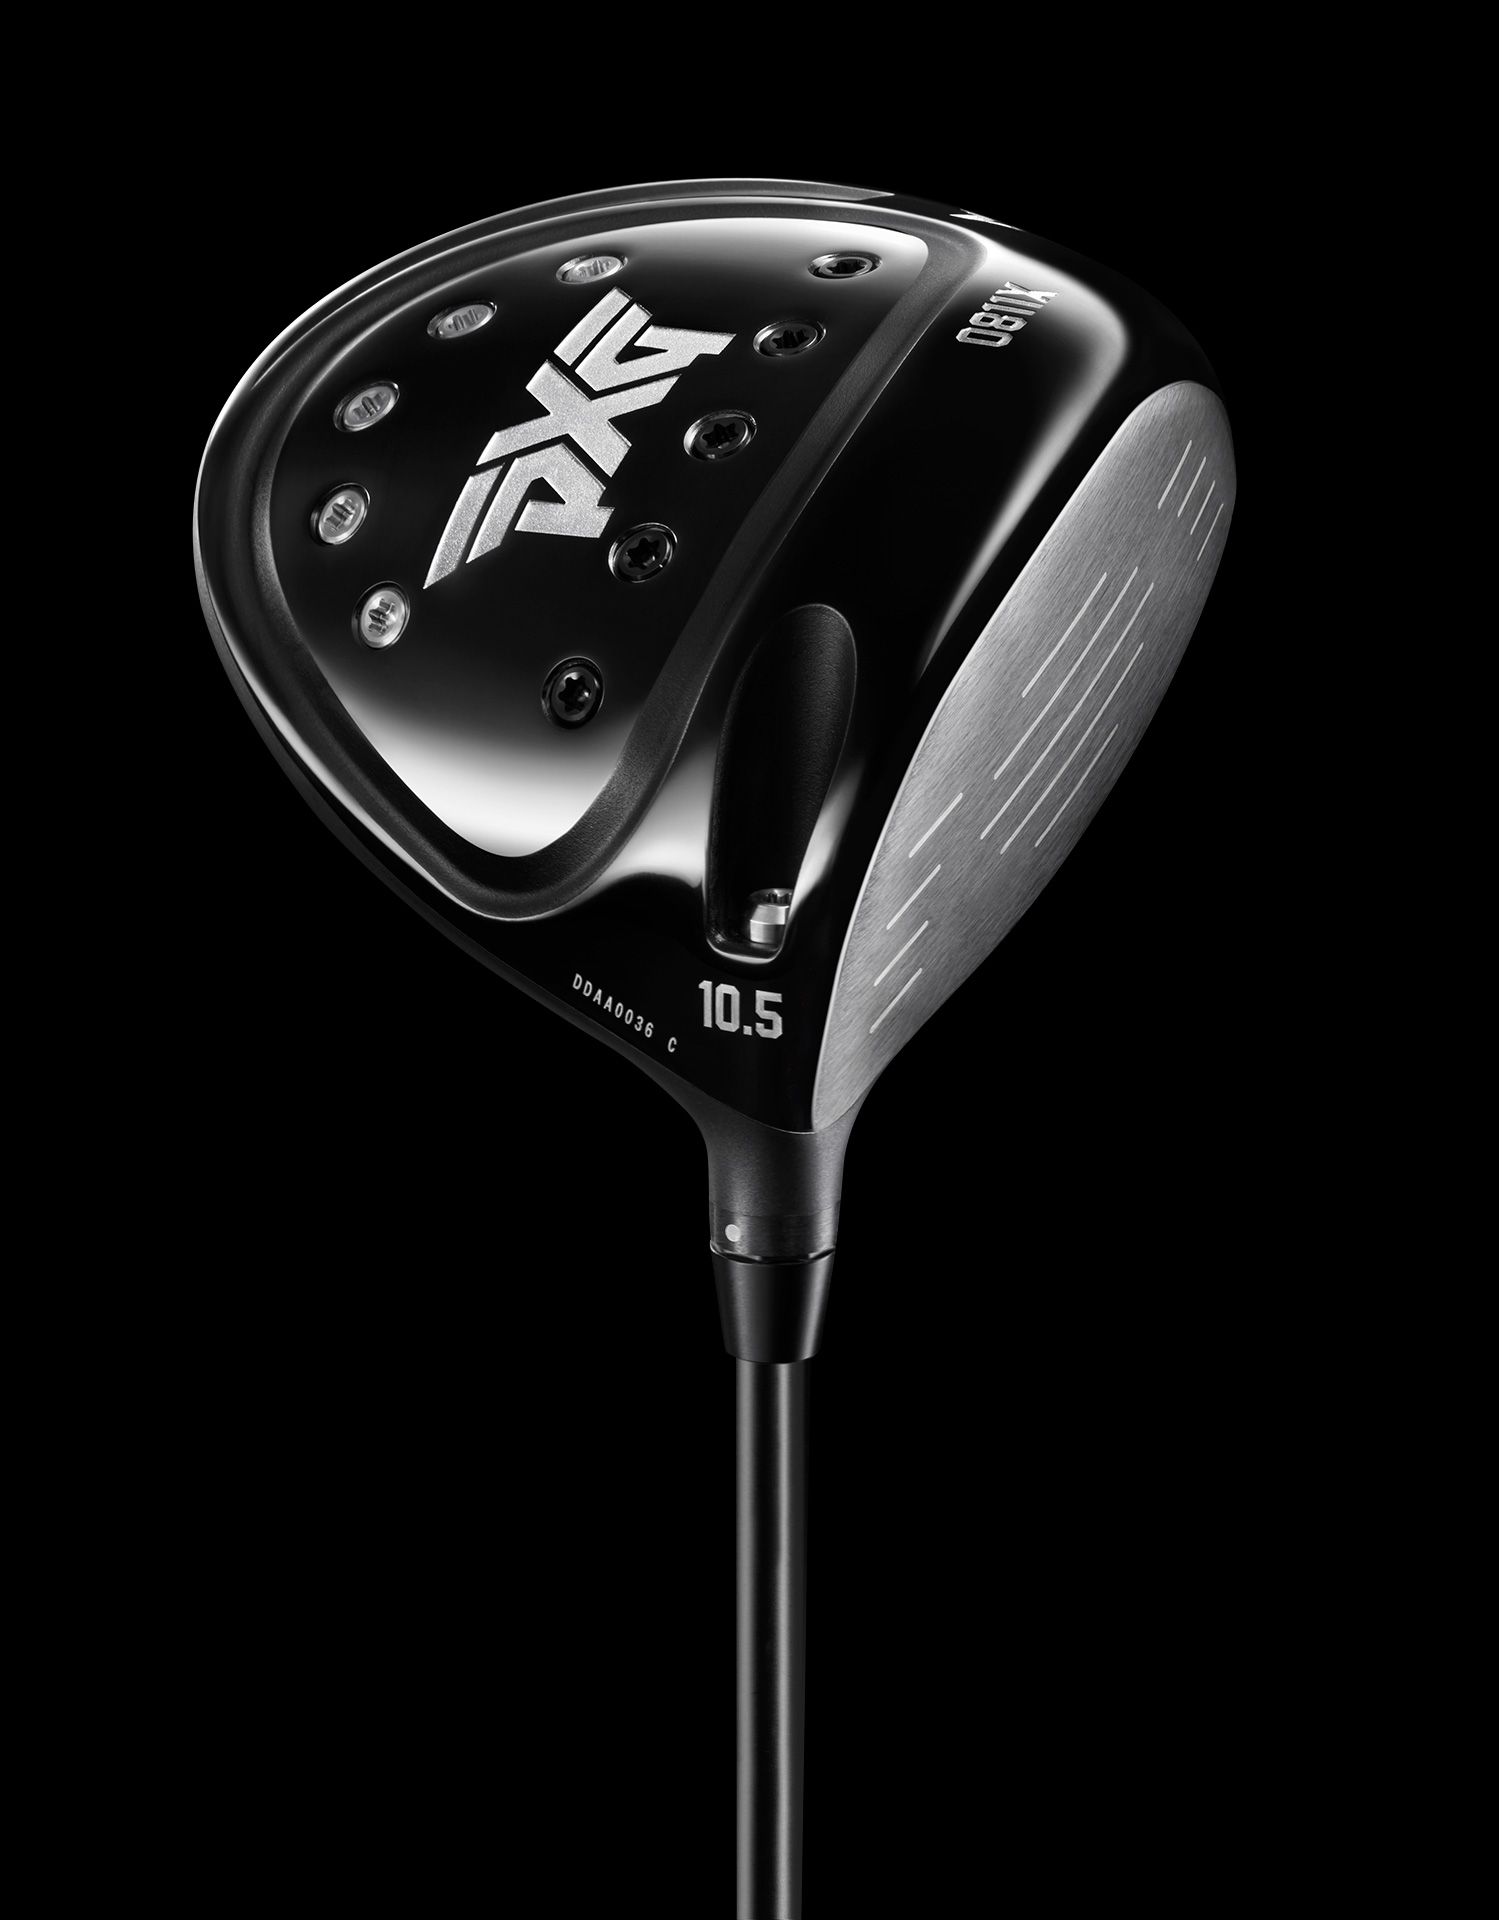 pxg-0811x-driver-sole-web